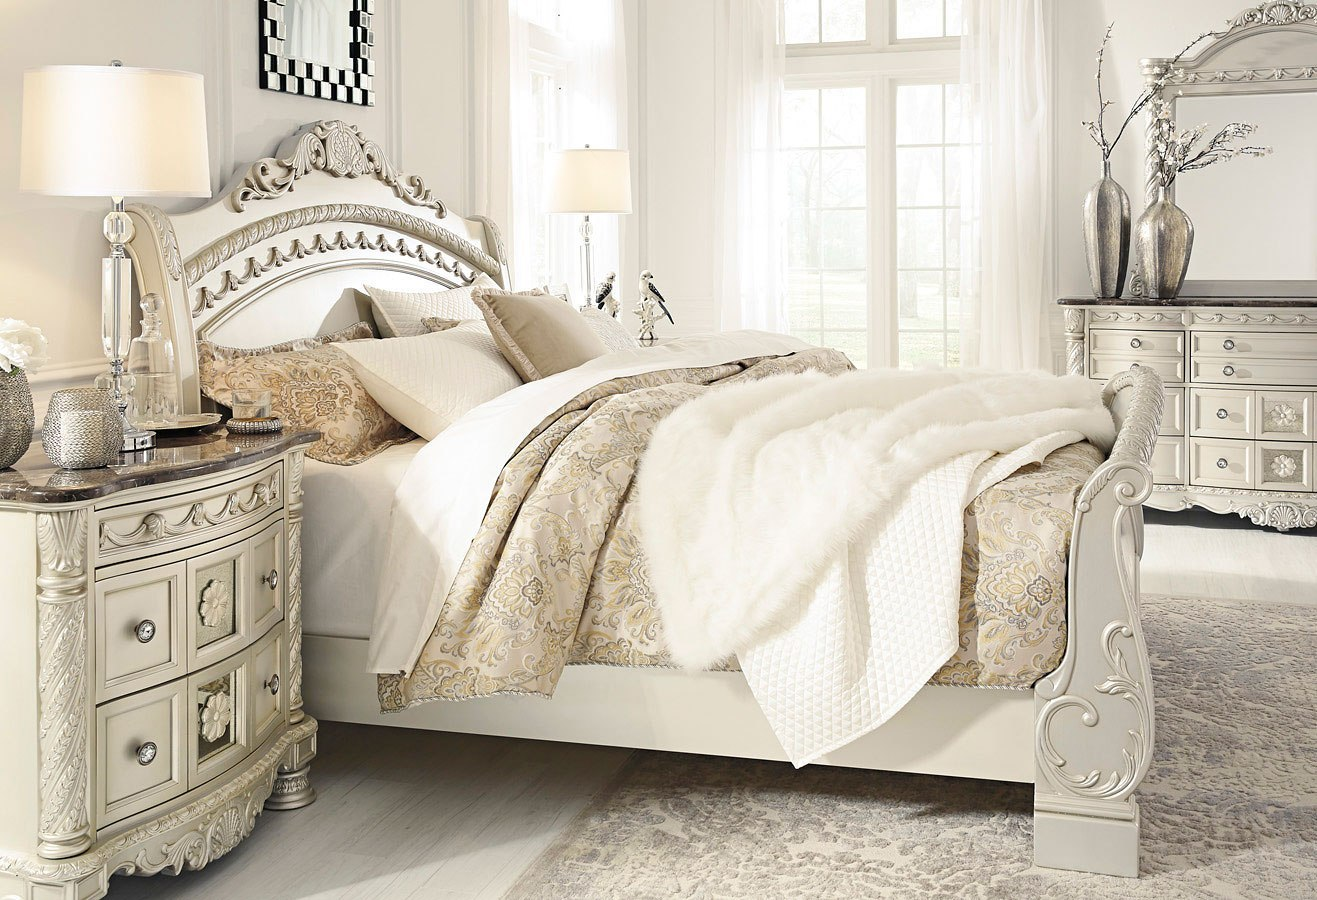 Cassimore sleigh bedroom set by signature design by ashley - Ashley furniture sleigh bedroom set ...